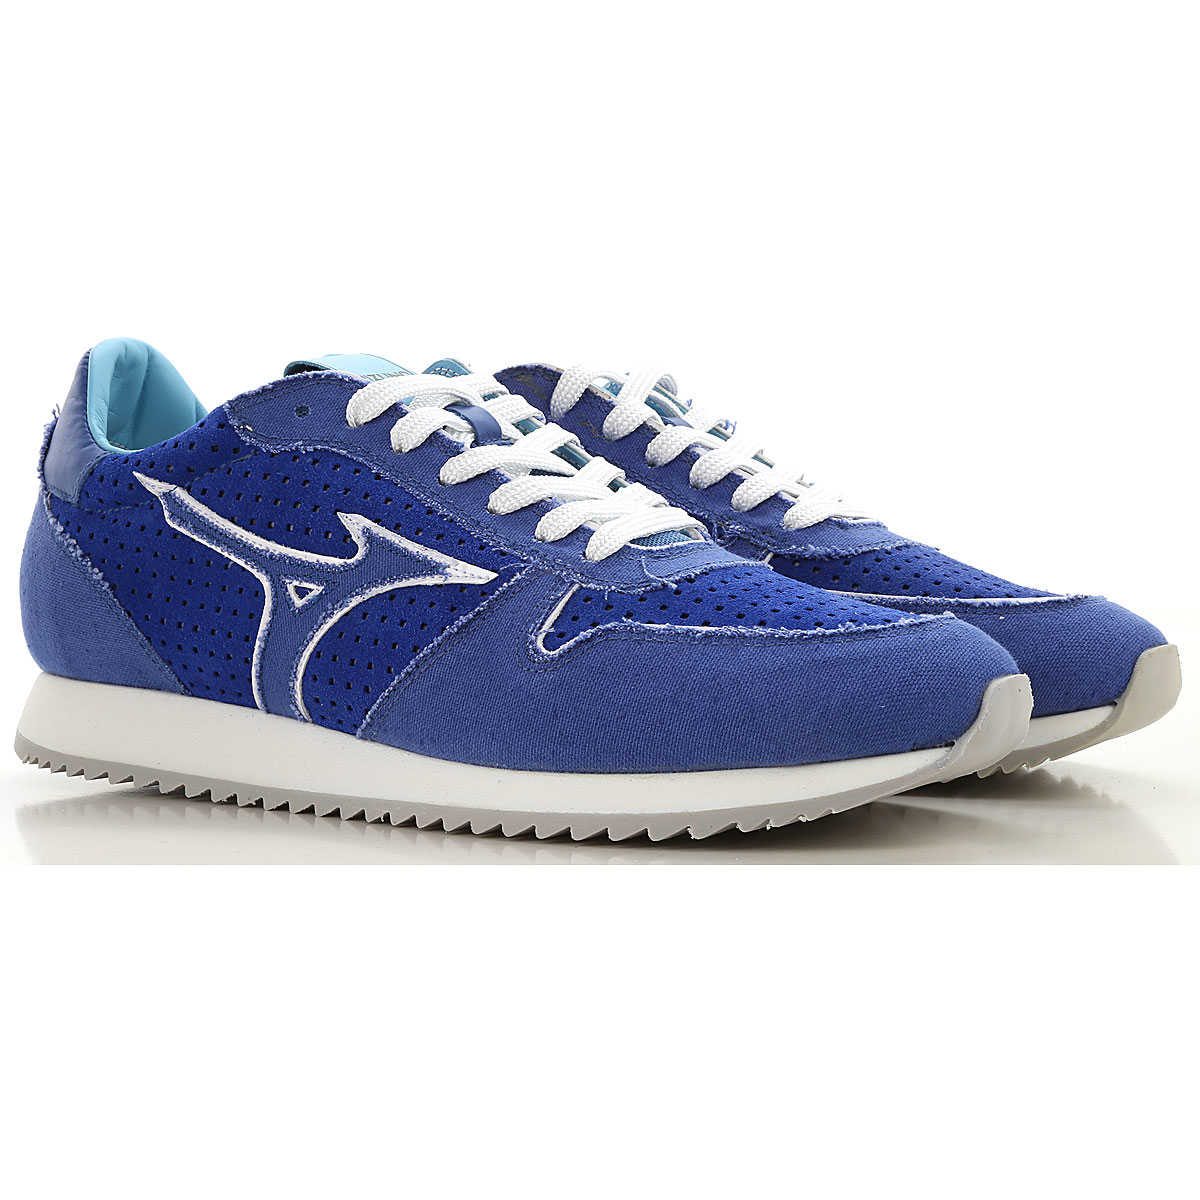 Mizuno Sneakers for Men On Sale in Outlet Blue SE - GOOFASH